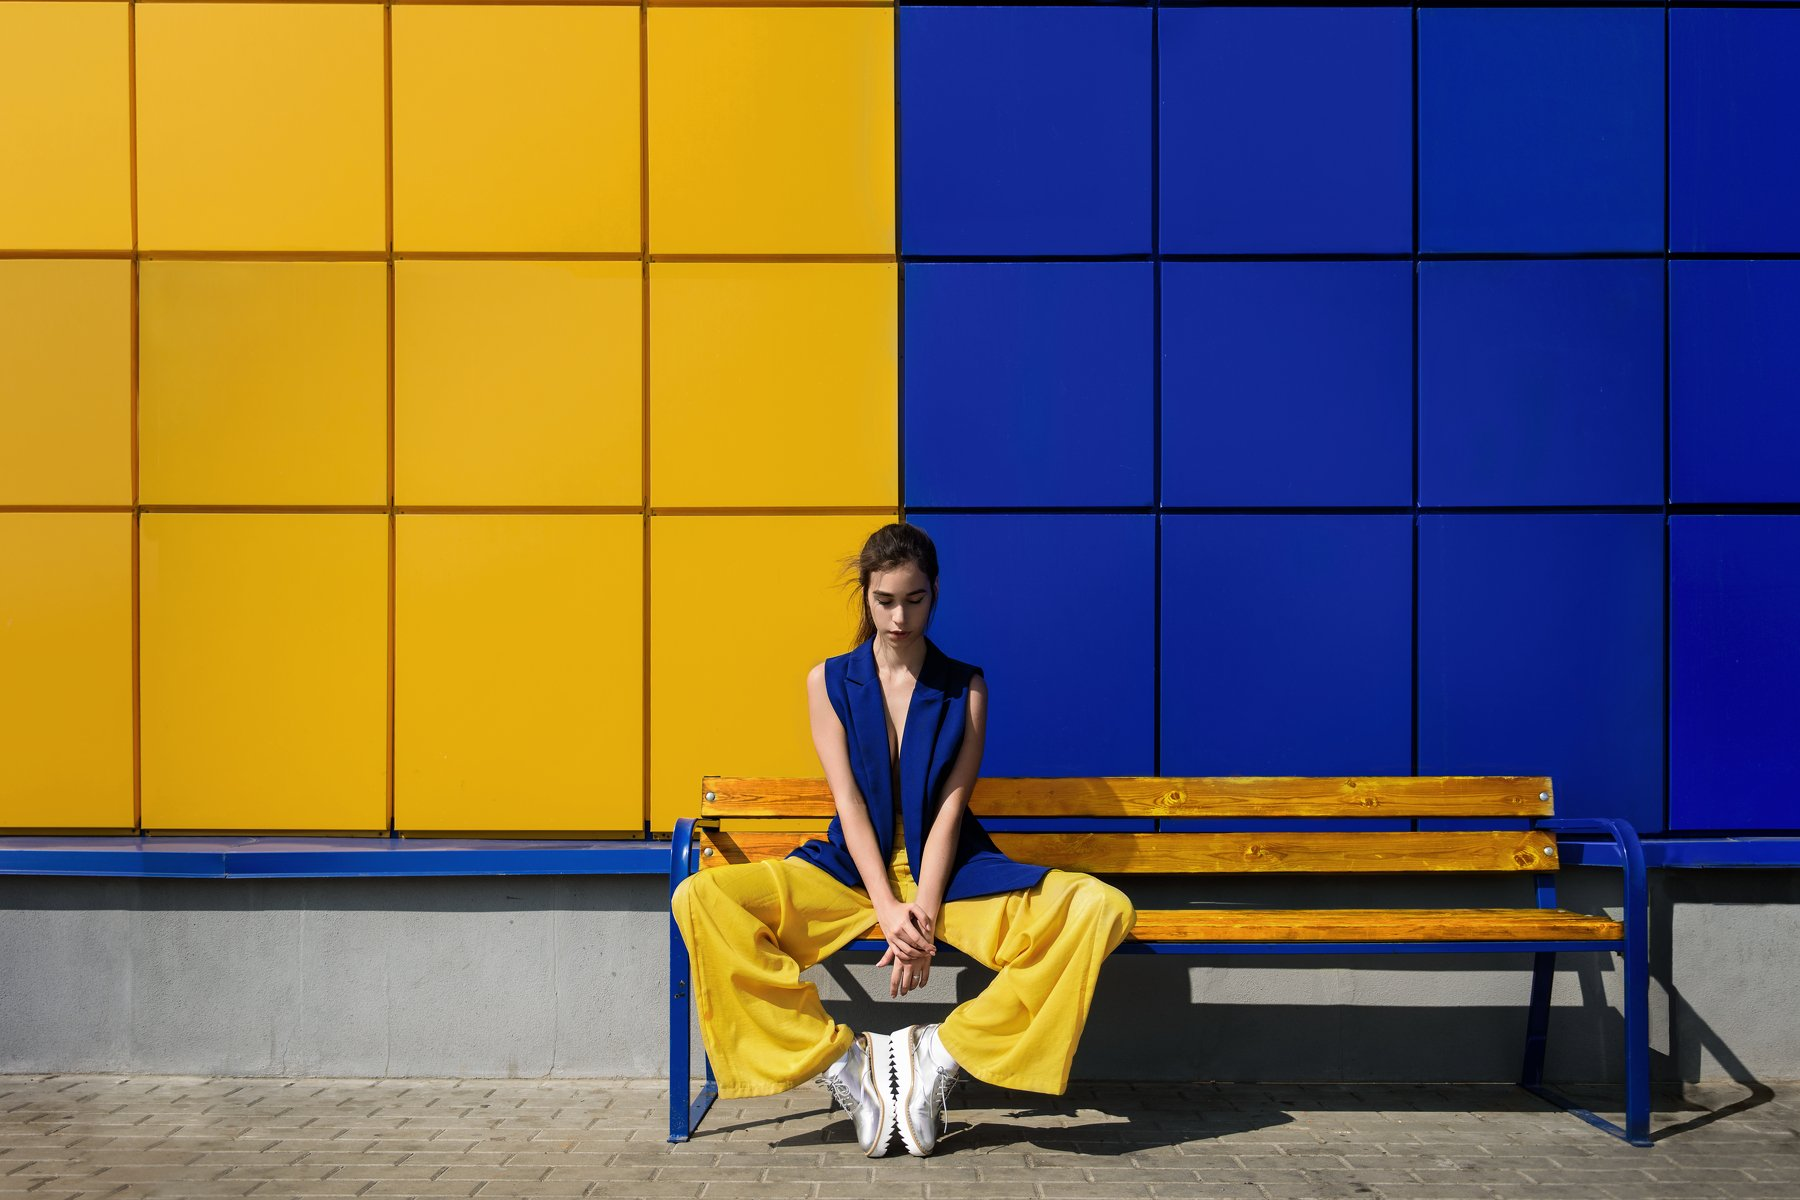 yellow, blue, color, composition, glamour, fashion, model, Nikon, exposure, Russia, geometry, young, model tests, Анна Дегтярёва